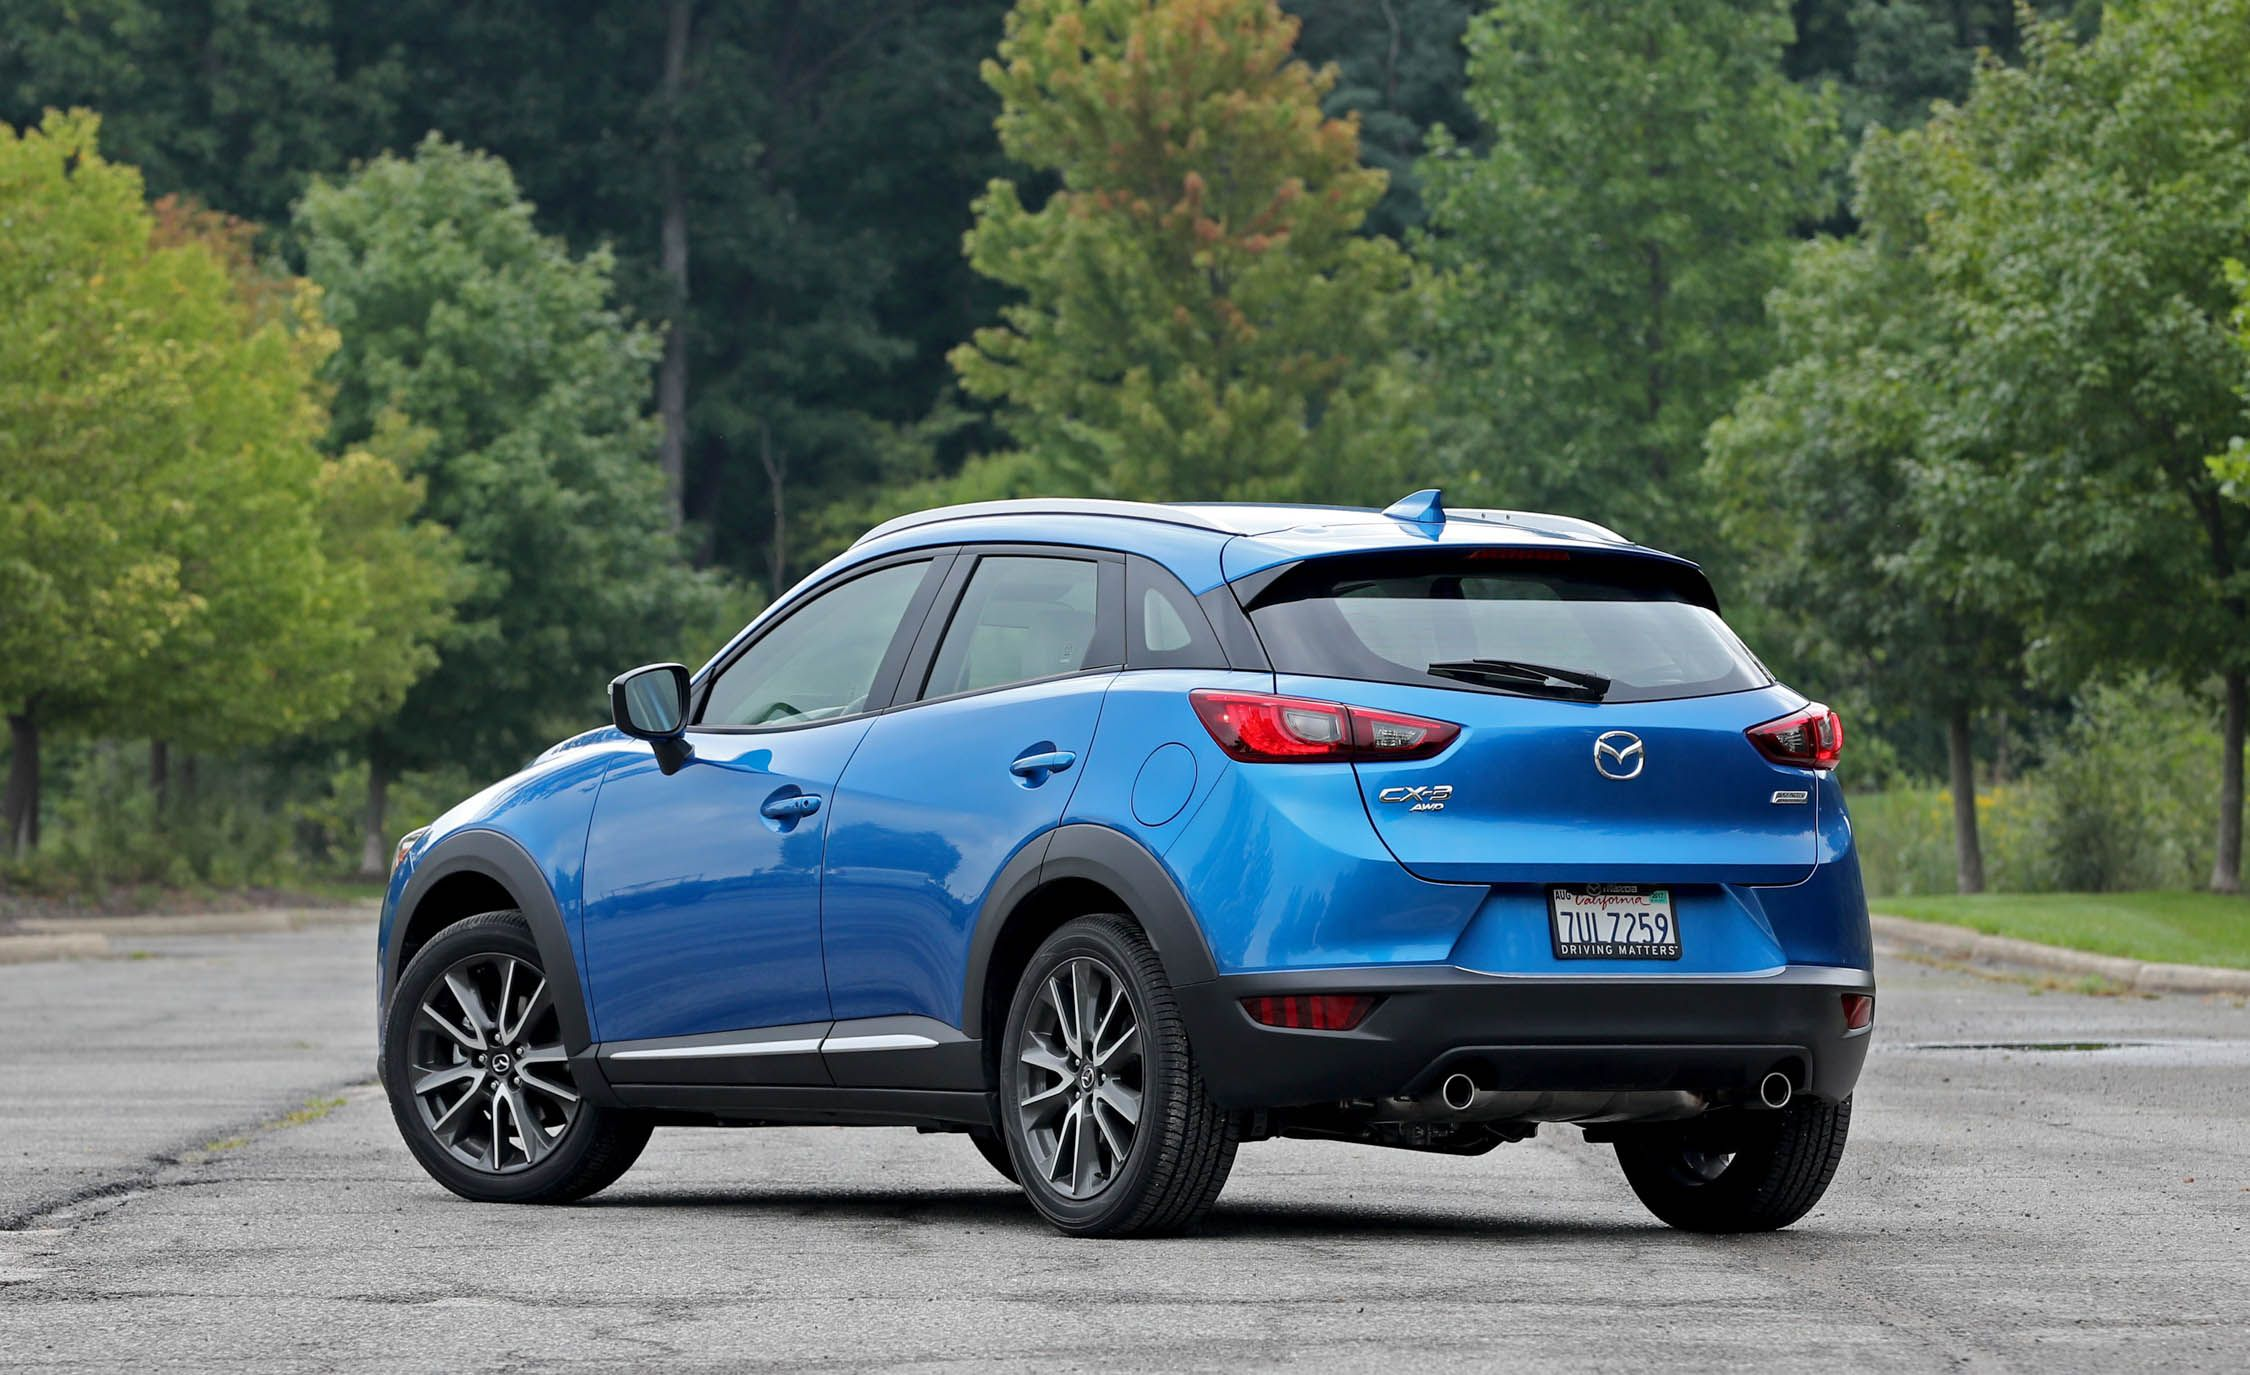 2019 Mazda Cx 3 Reviews Price Photos And Specs Car Driver